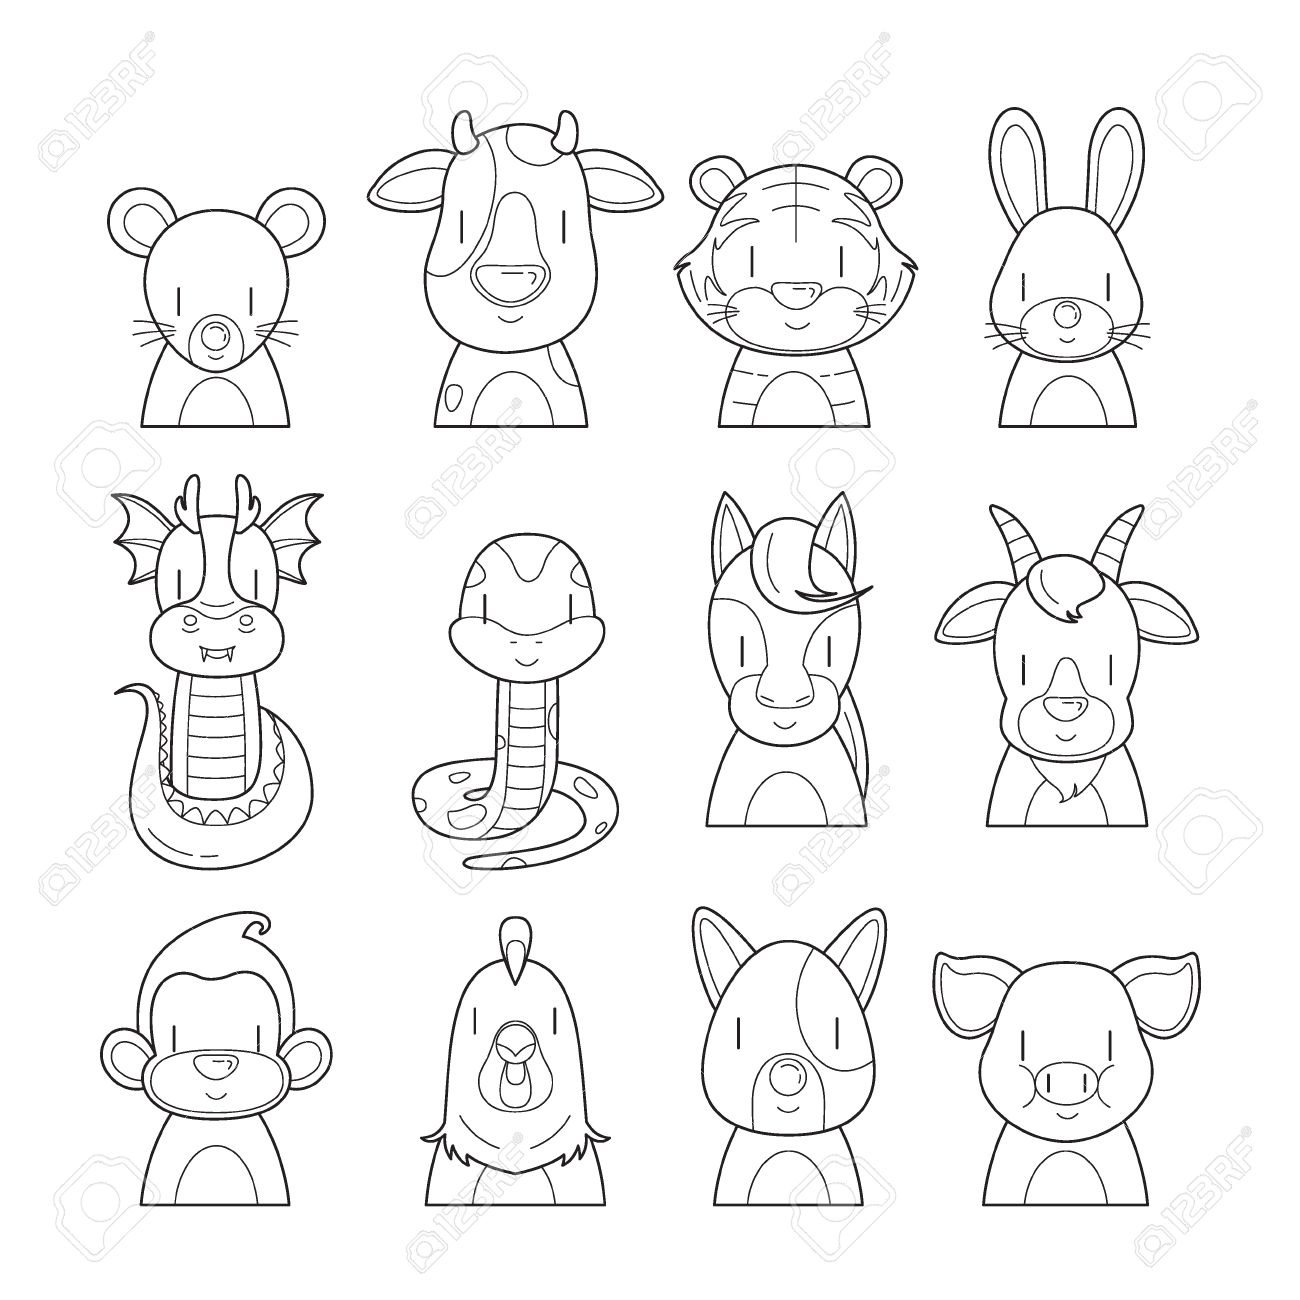 12 animals chinese zodiac signs outline icons set horoscope 12 animals chinese zodiac signs outline icons set horoscope astrological constellation eastern buycottarizona Image collections